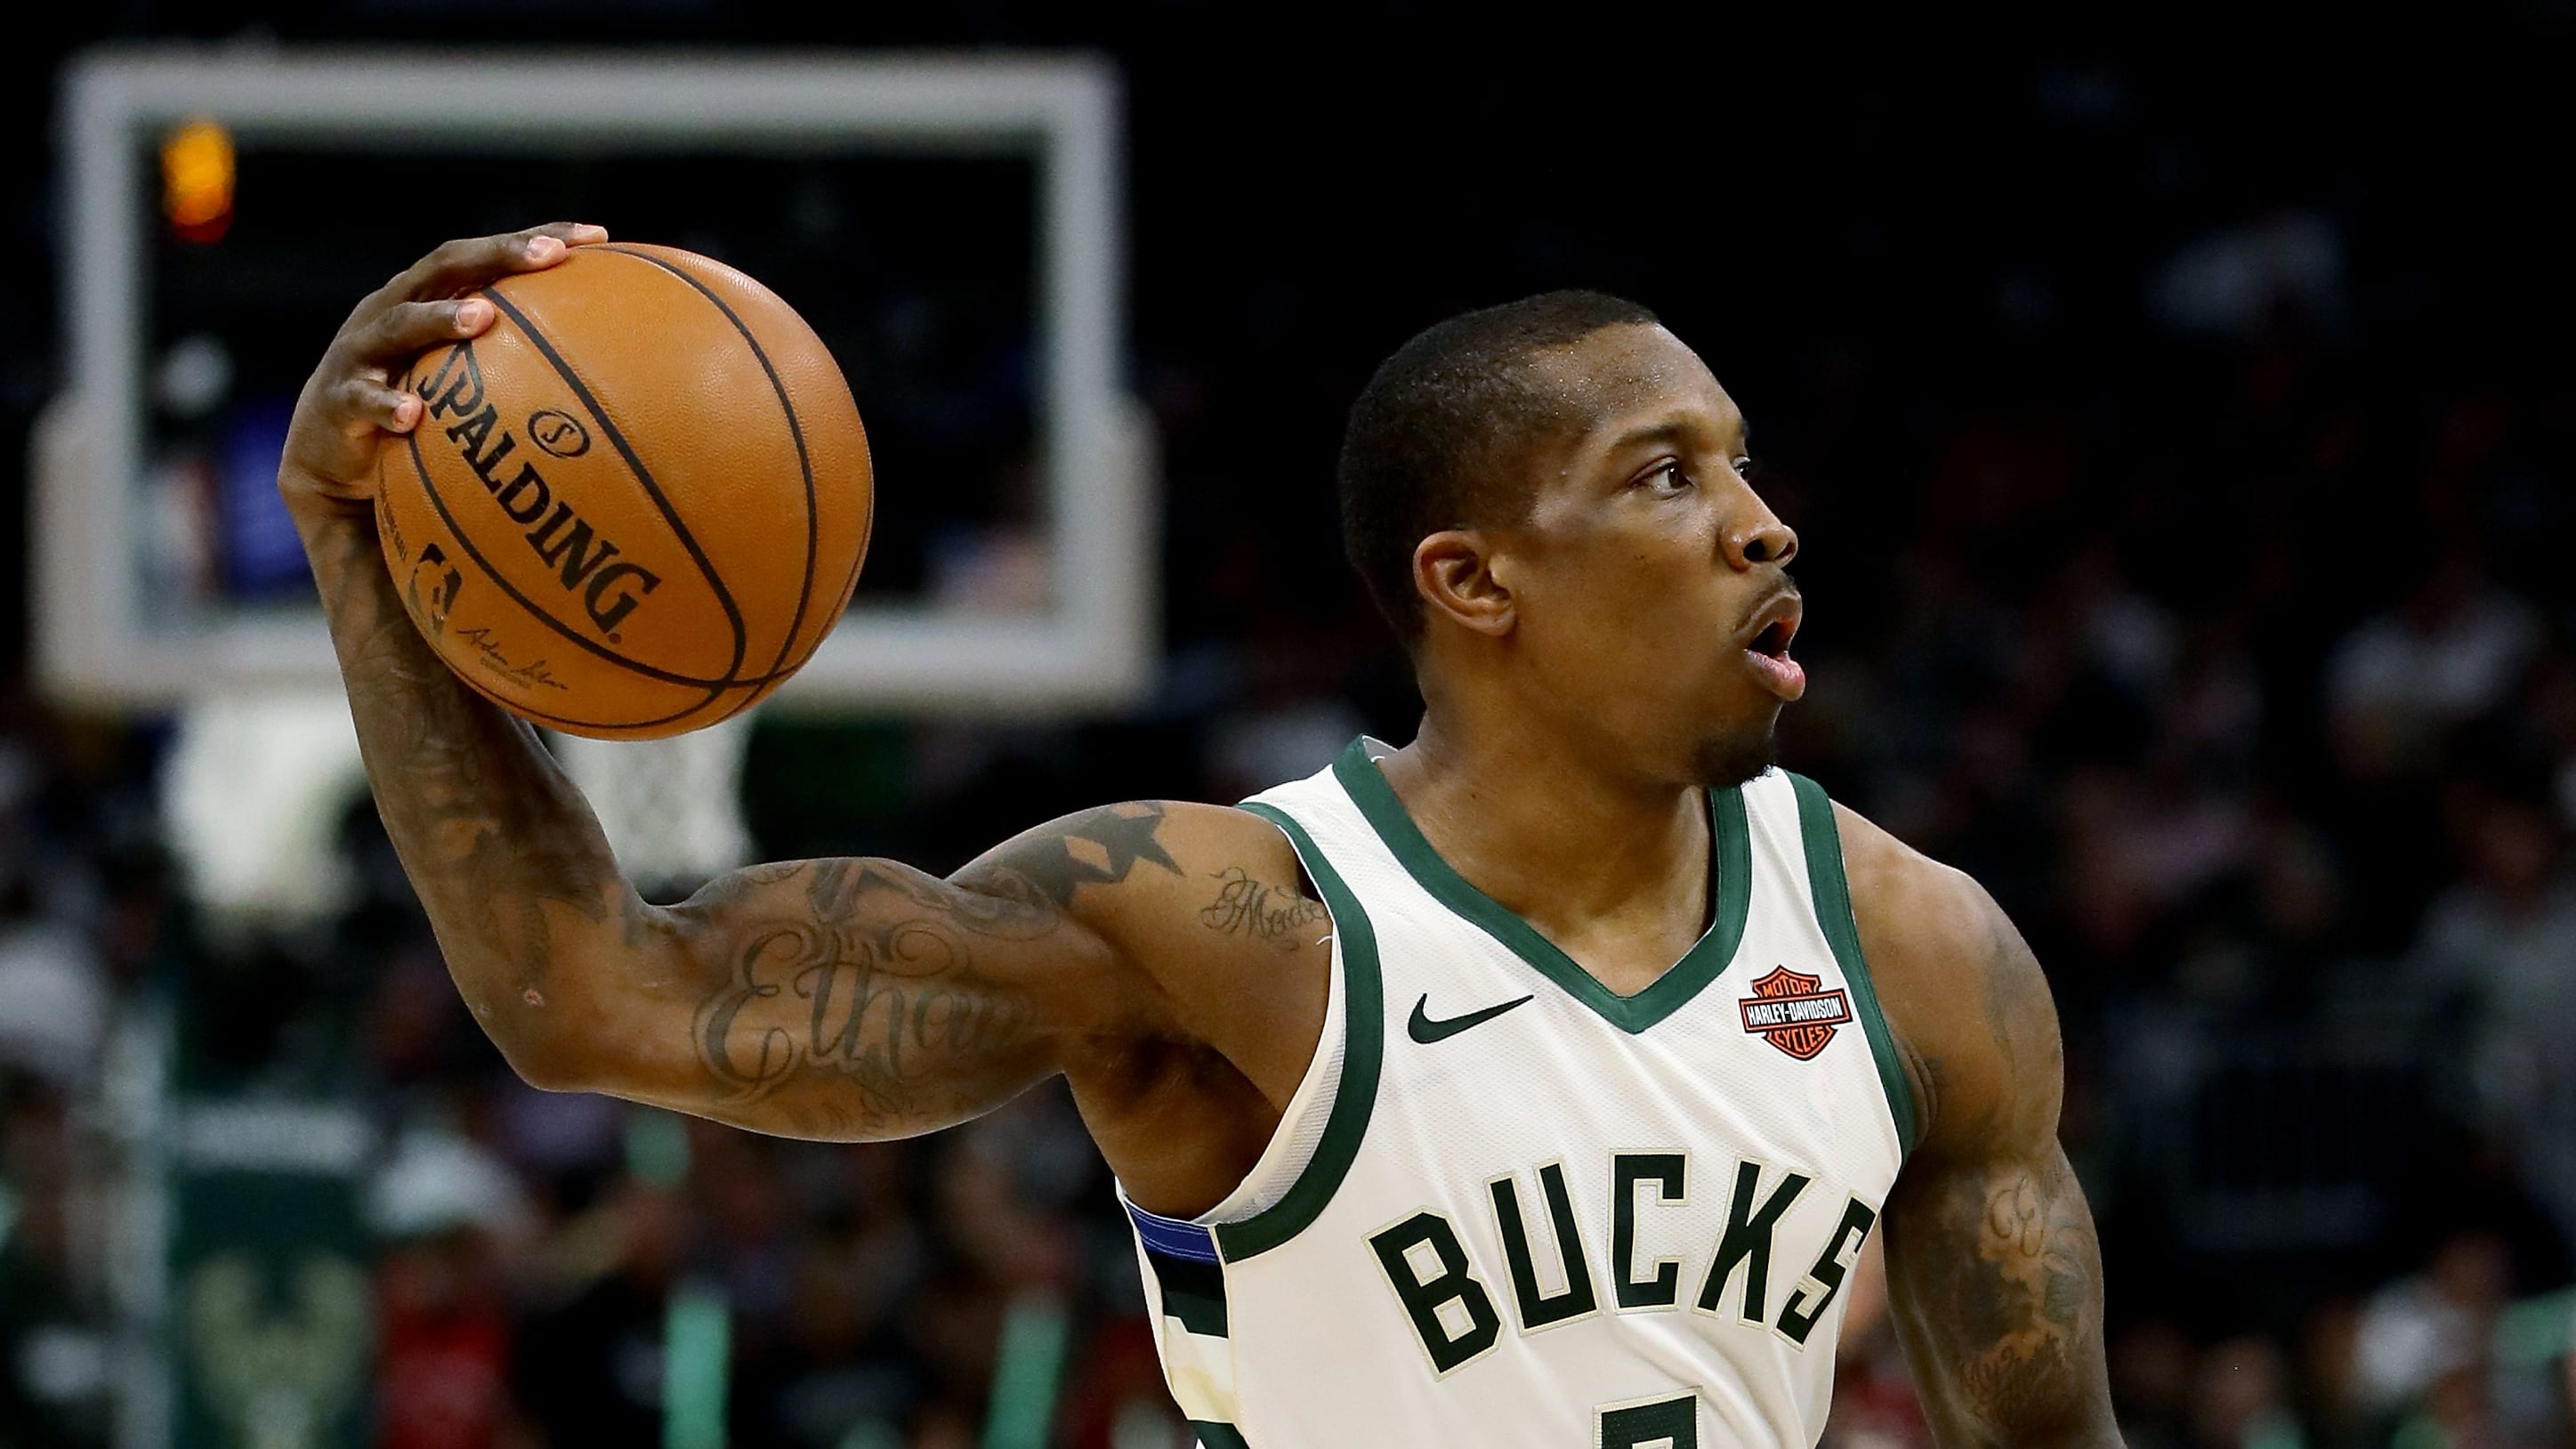 MILWAUKEE, WISCONSIN - MAY 17:  Eric Bledsoe #6 of the Milwaukee Bucks during Game Two of the Eastern Conference Finals of the 2019 NBA Playoffs at the Fiserv Forum on May 17, 2019 in Milwaukee, Wisconsin. NOTE TO USER: User expressly acknowledges and agrees that, by downloading and or using this photograph, User is consenting to the terms and conditions of the Getty Images License Agreement. (Photo by Jonathan Daniel/Getty Images)